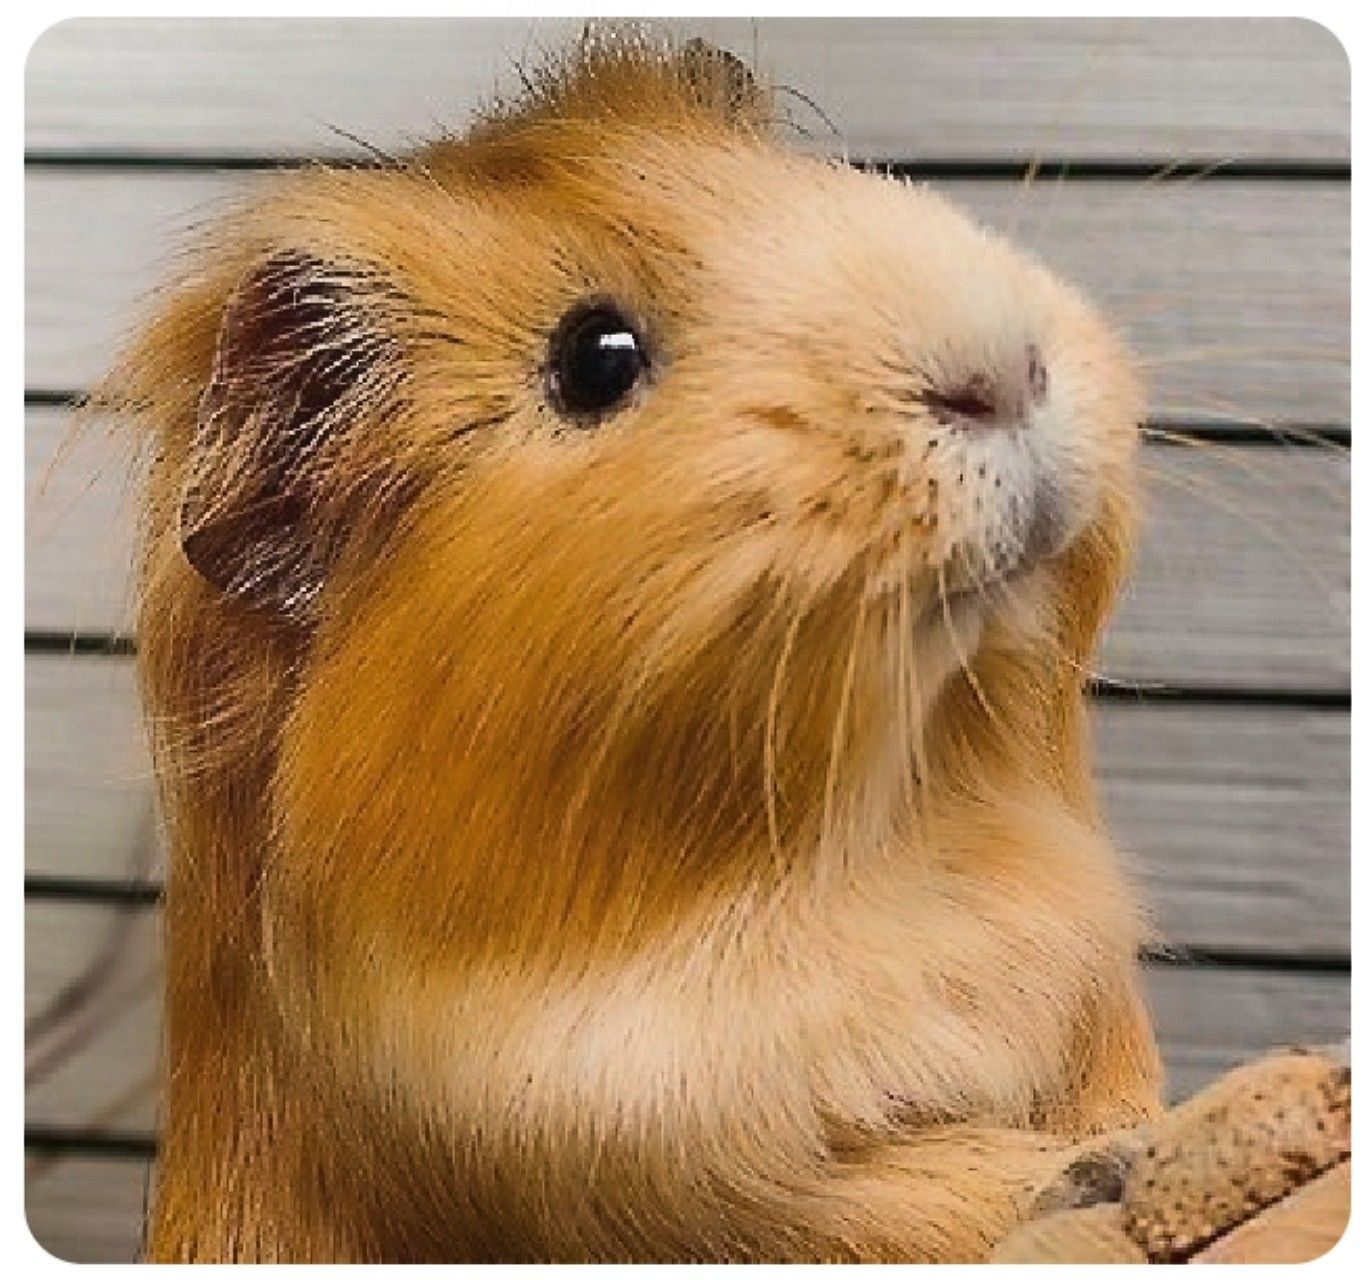 Pin by Chelsea on Guinea pigs Pet guinea pigs, Guinea pigs